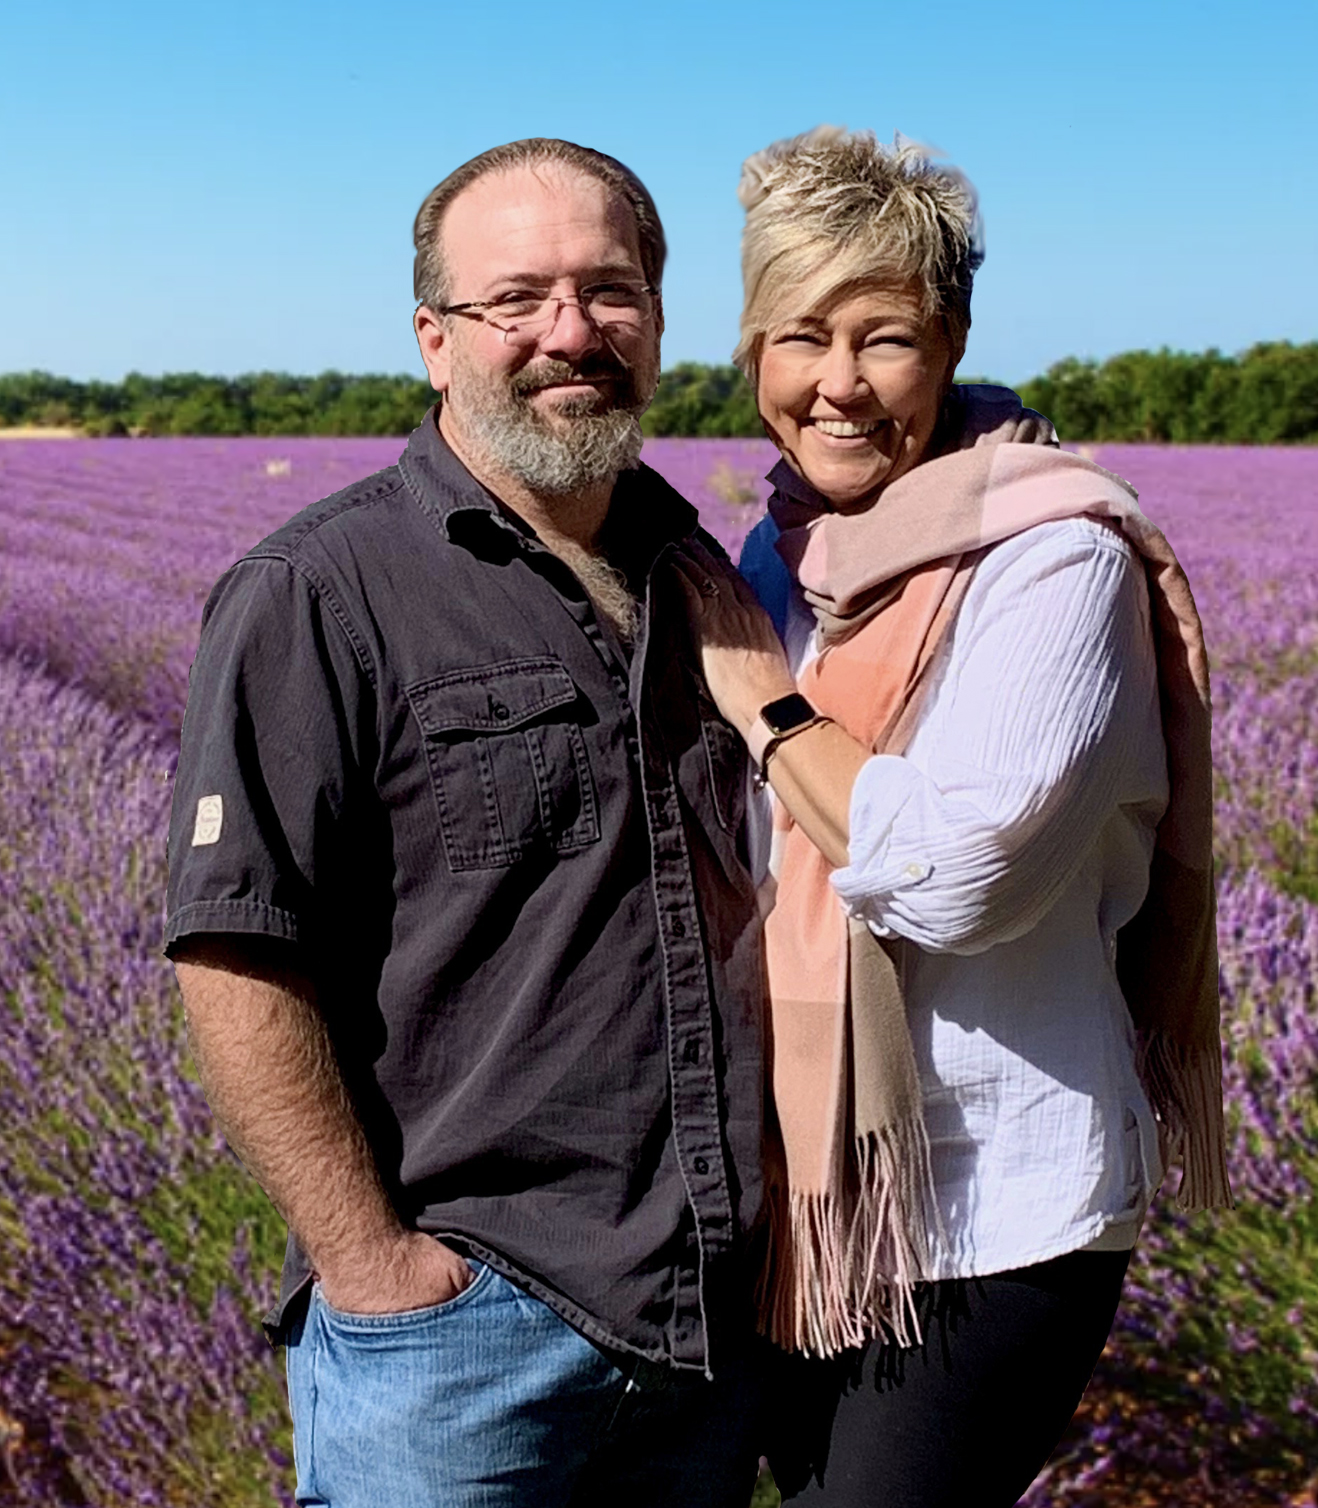 Larry and Stacie lavender field